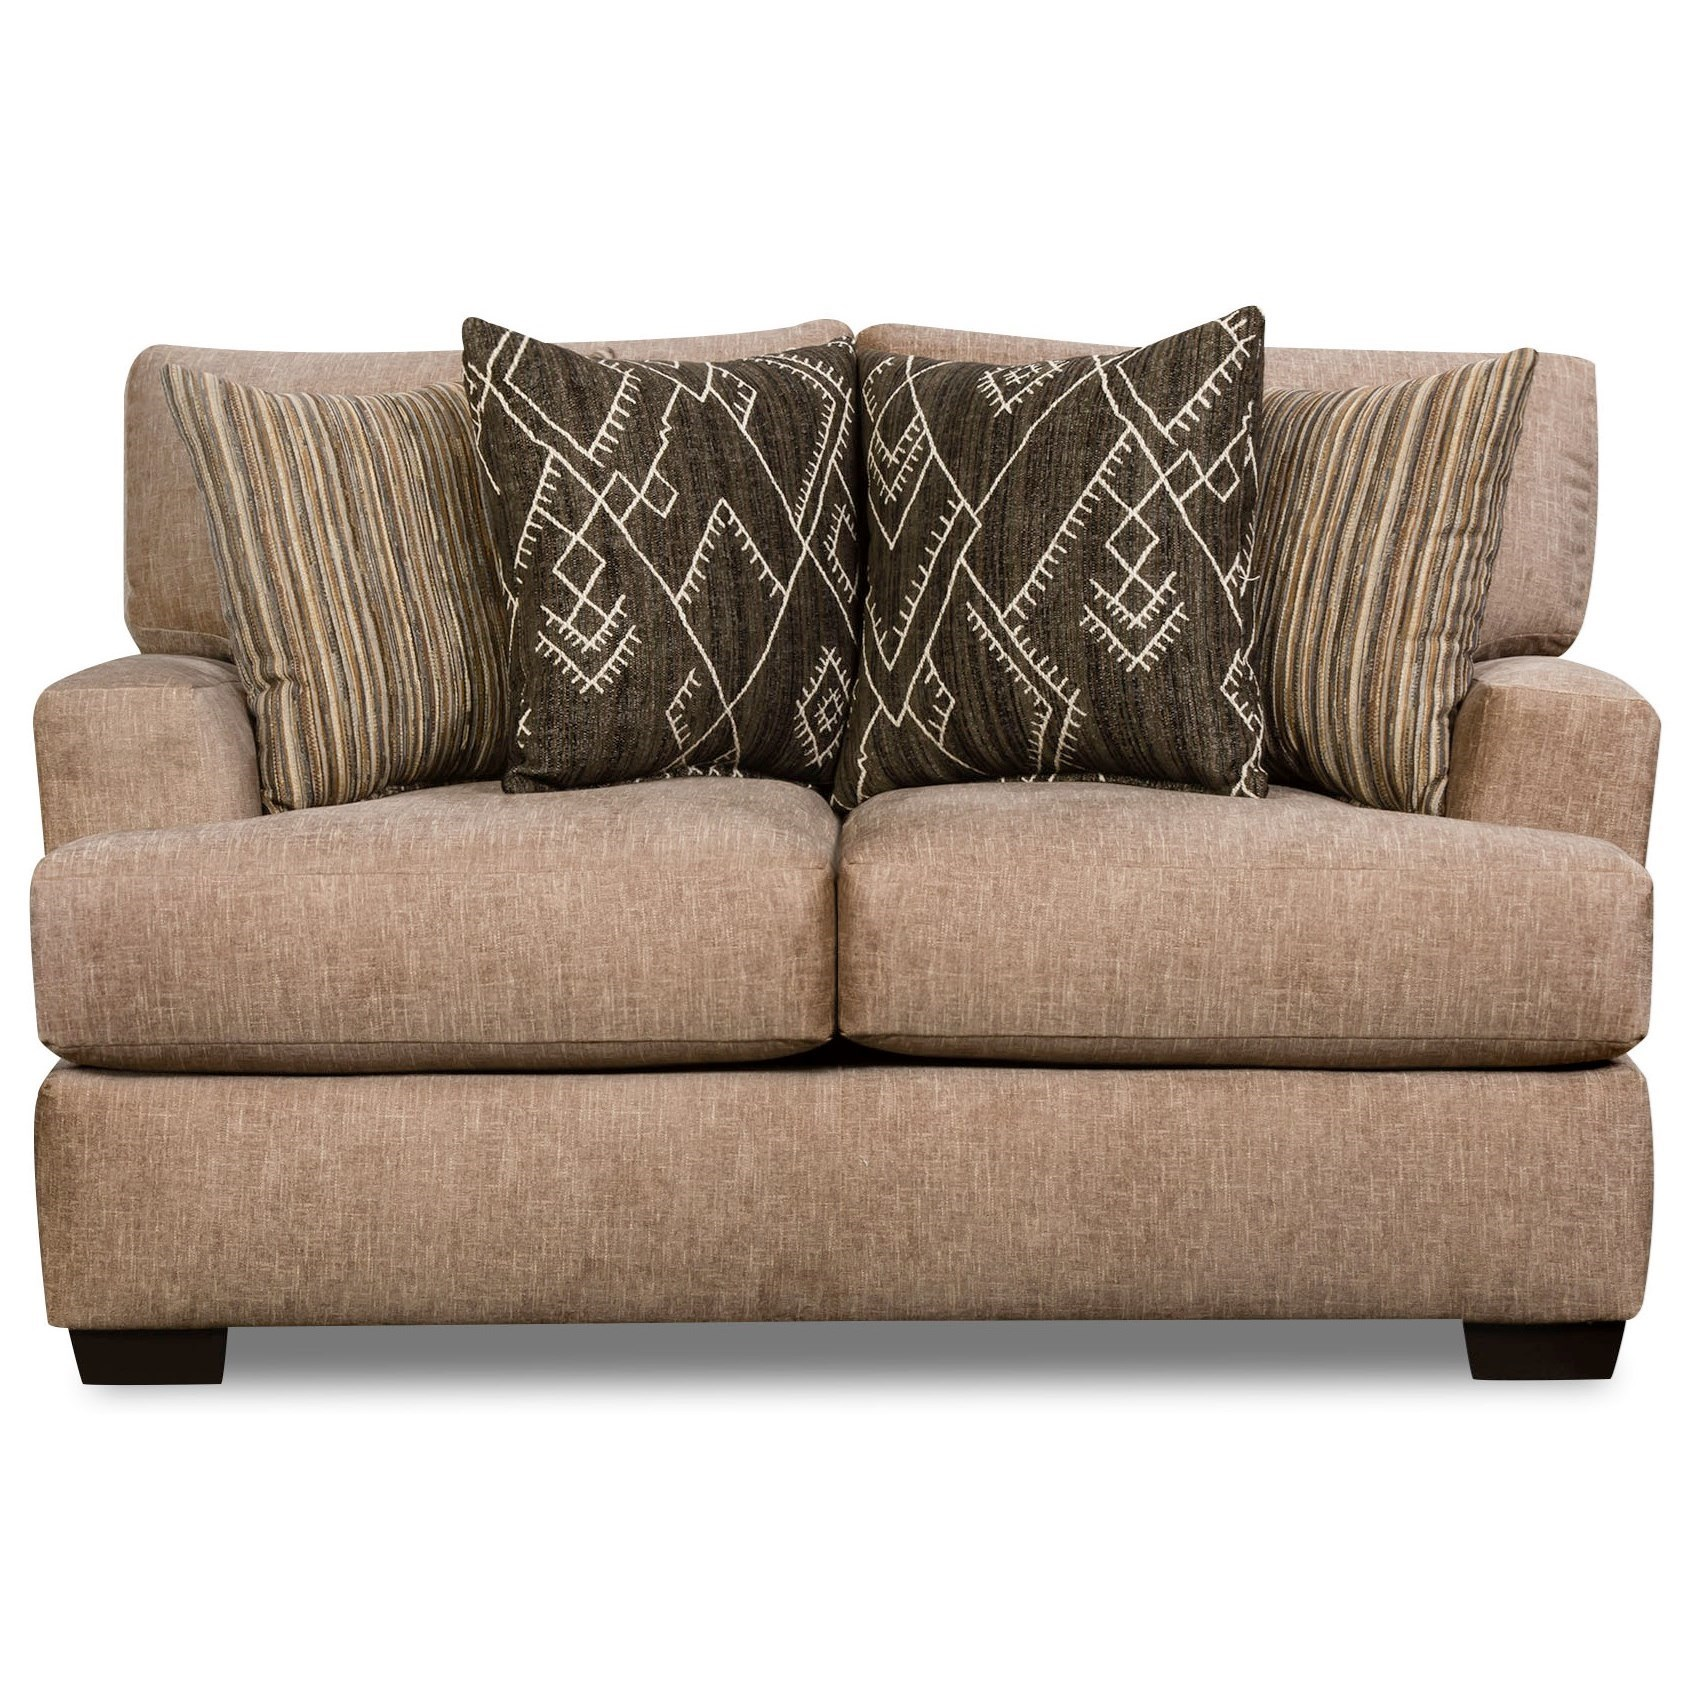 29D0 Loveseat by Corinthian at Story & Lee Furniture